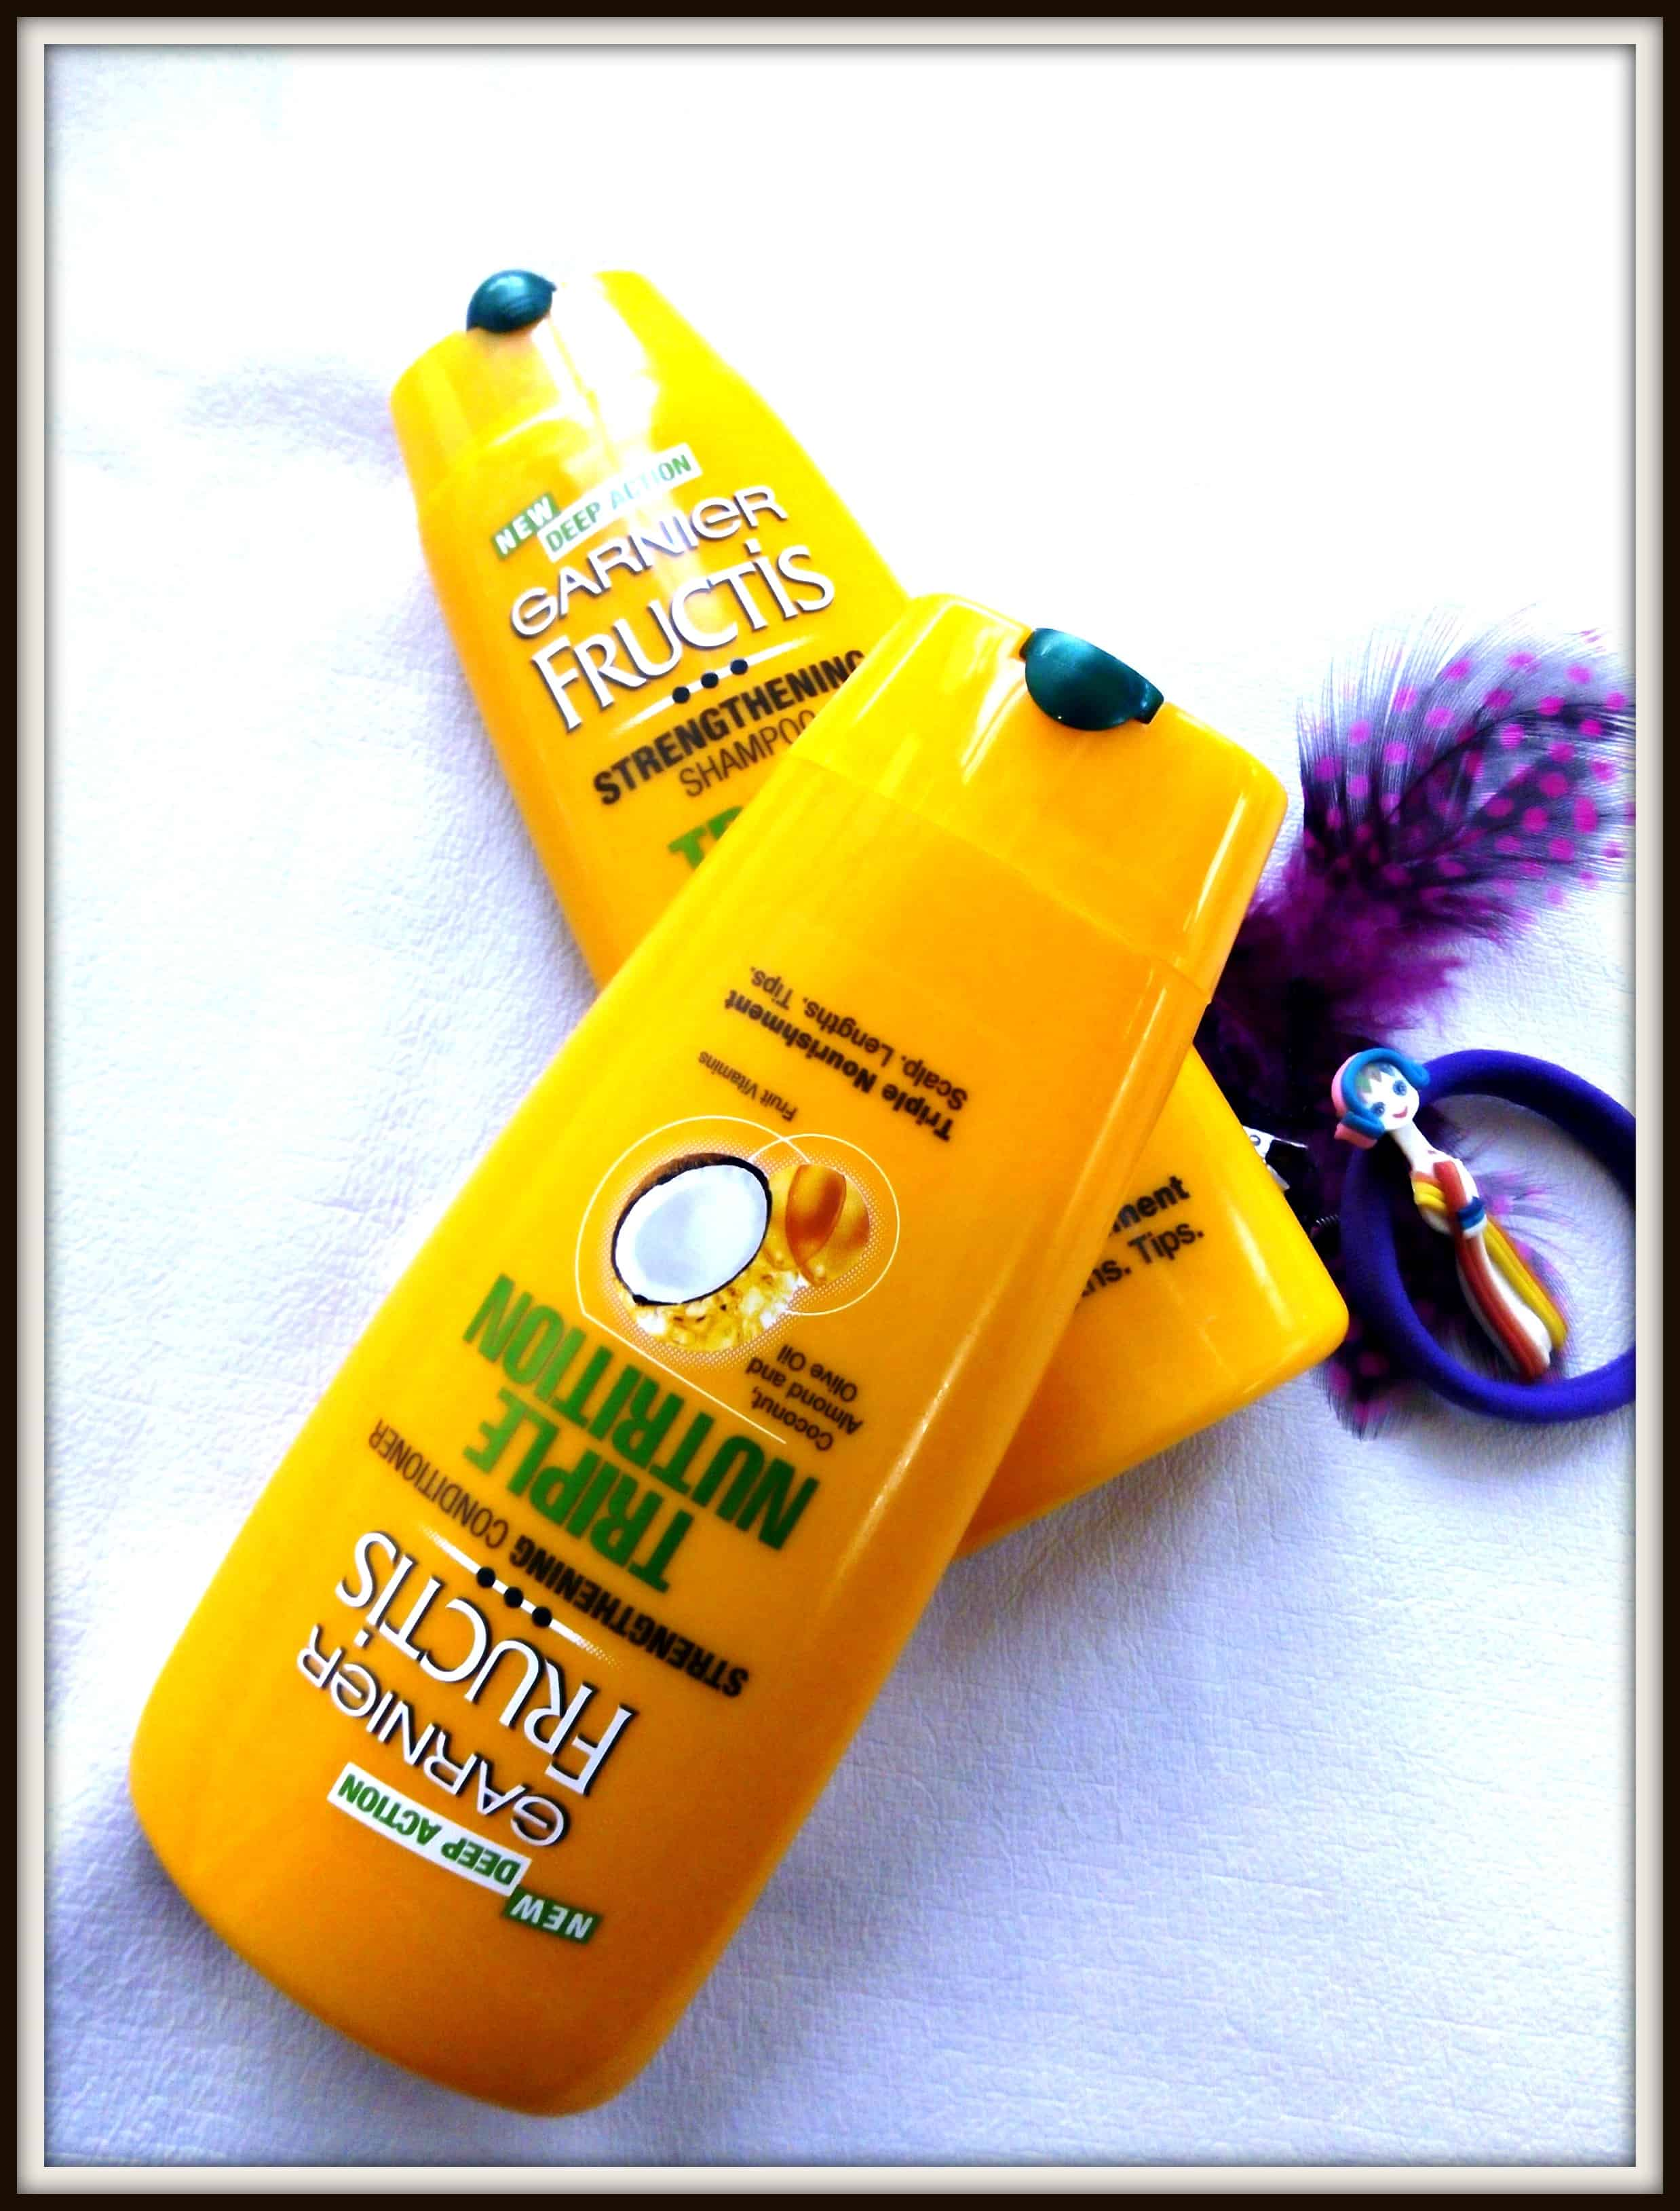 Garnier Fructis Triple Nutrition Shampoo and Conditioner Review